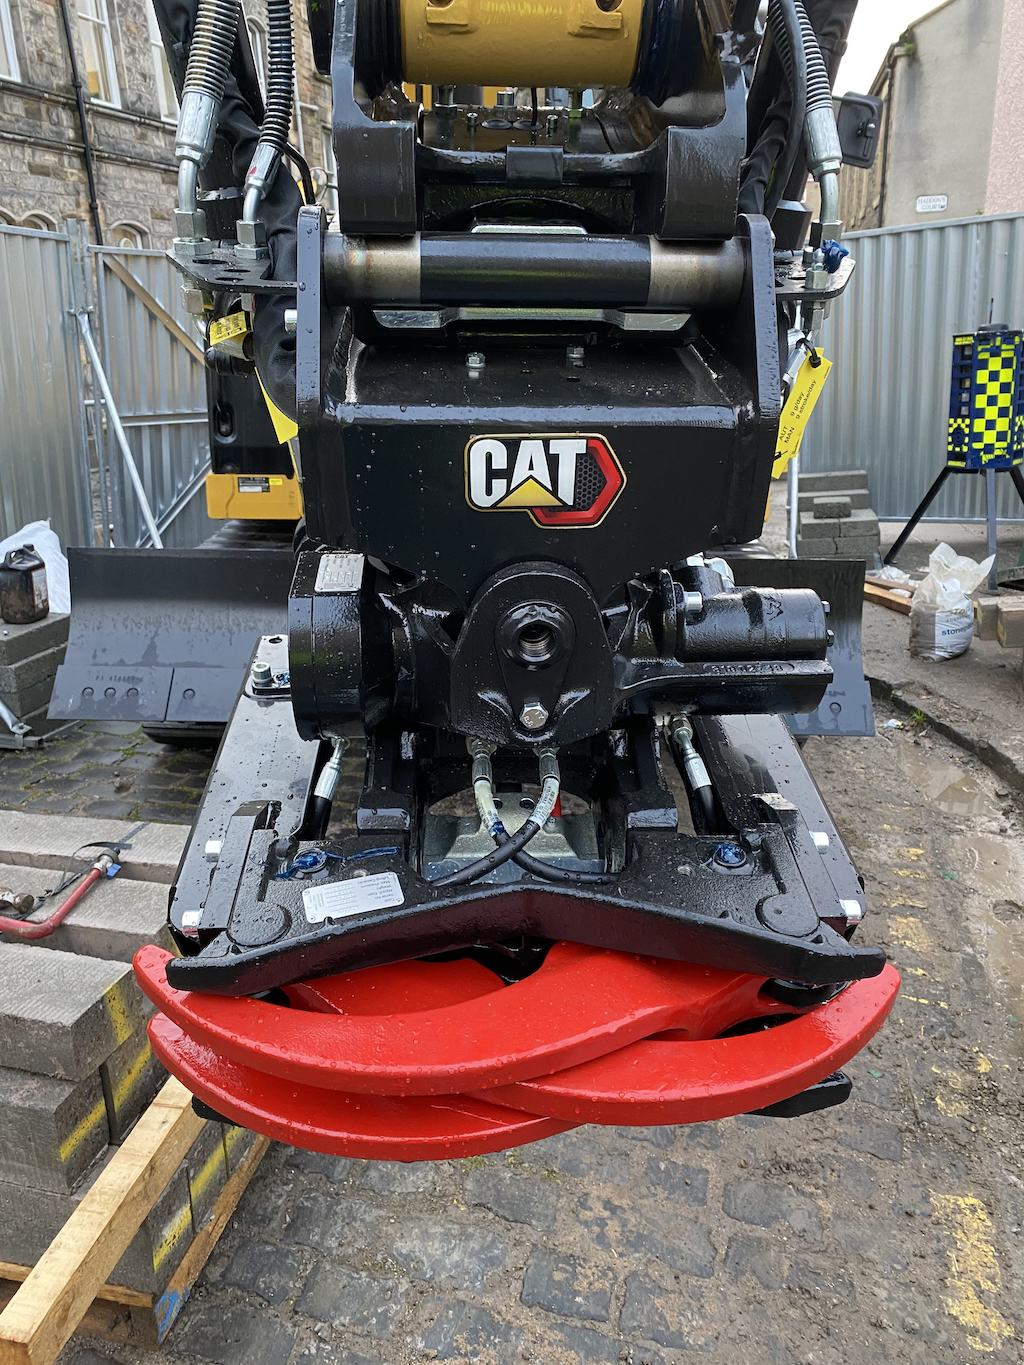 Keystone Construction chooses Caterpillar for first machine purchase